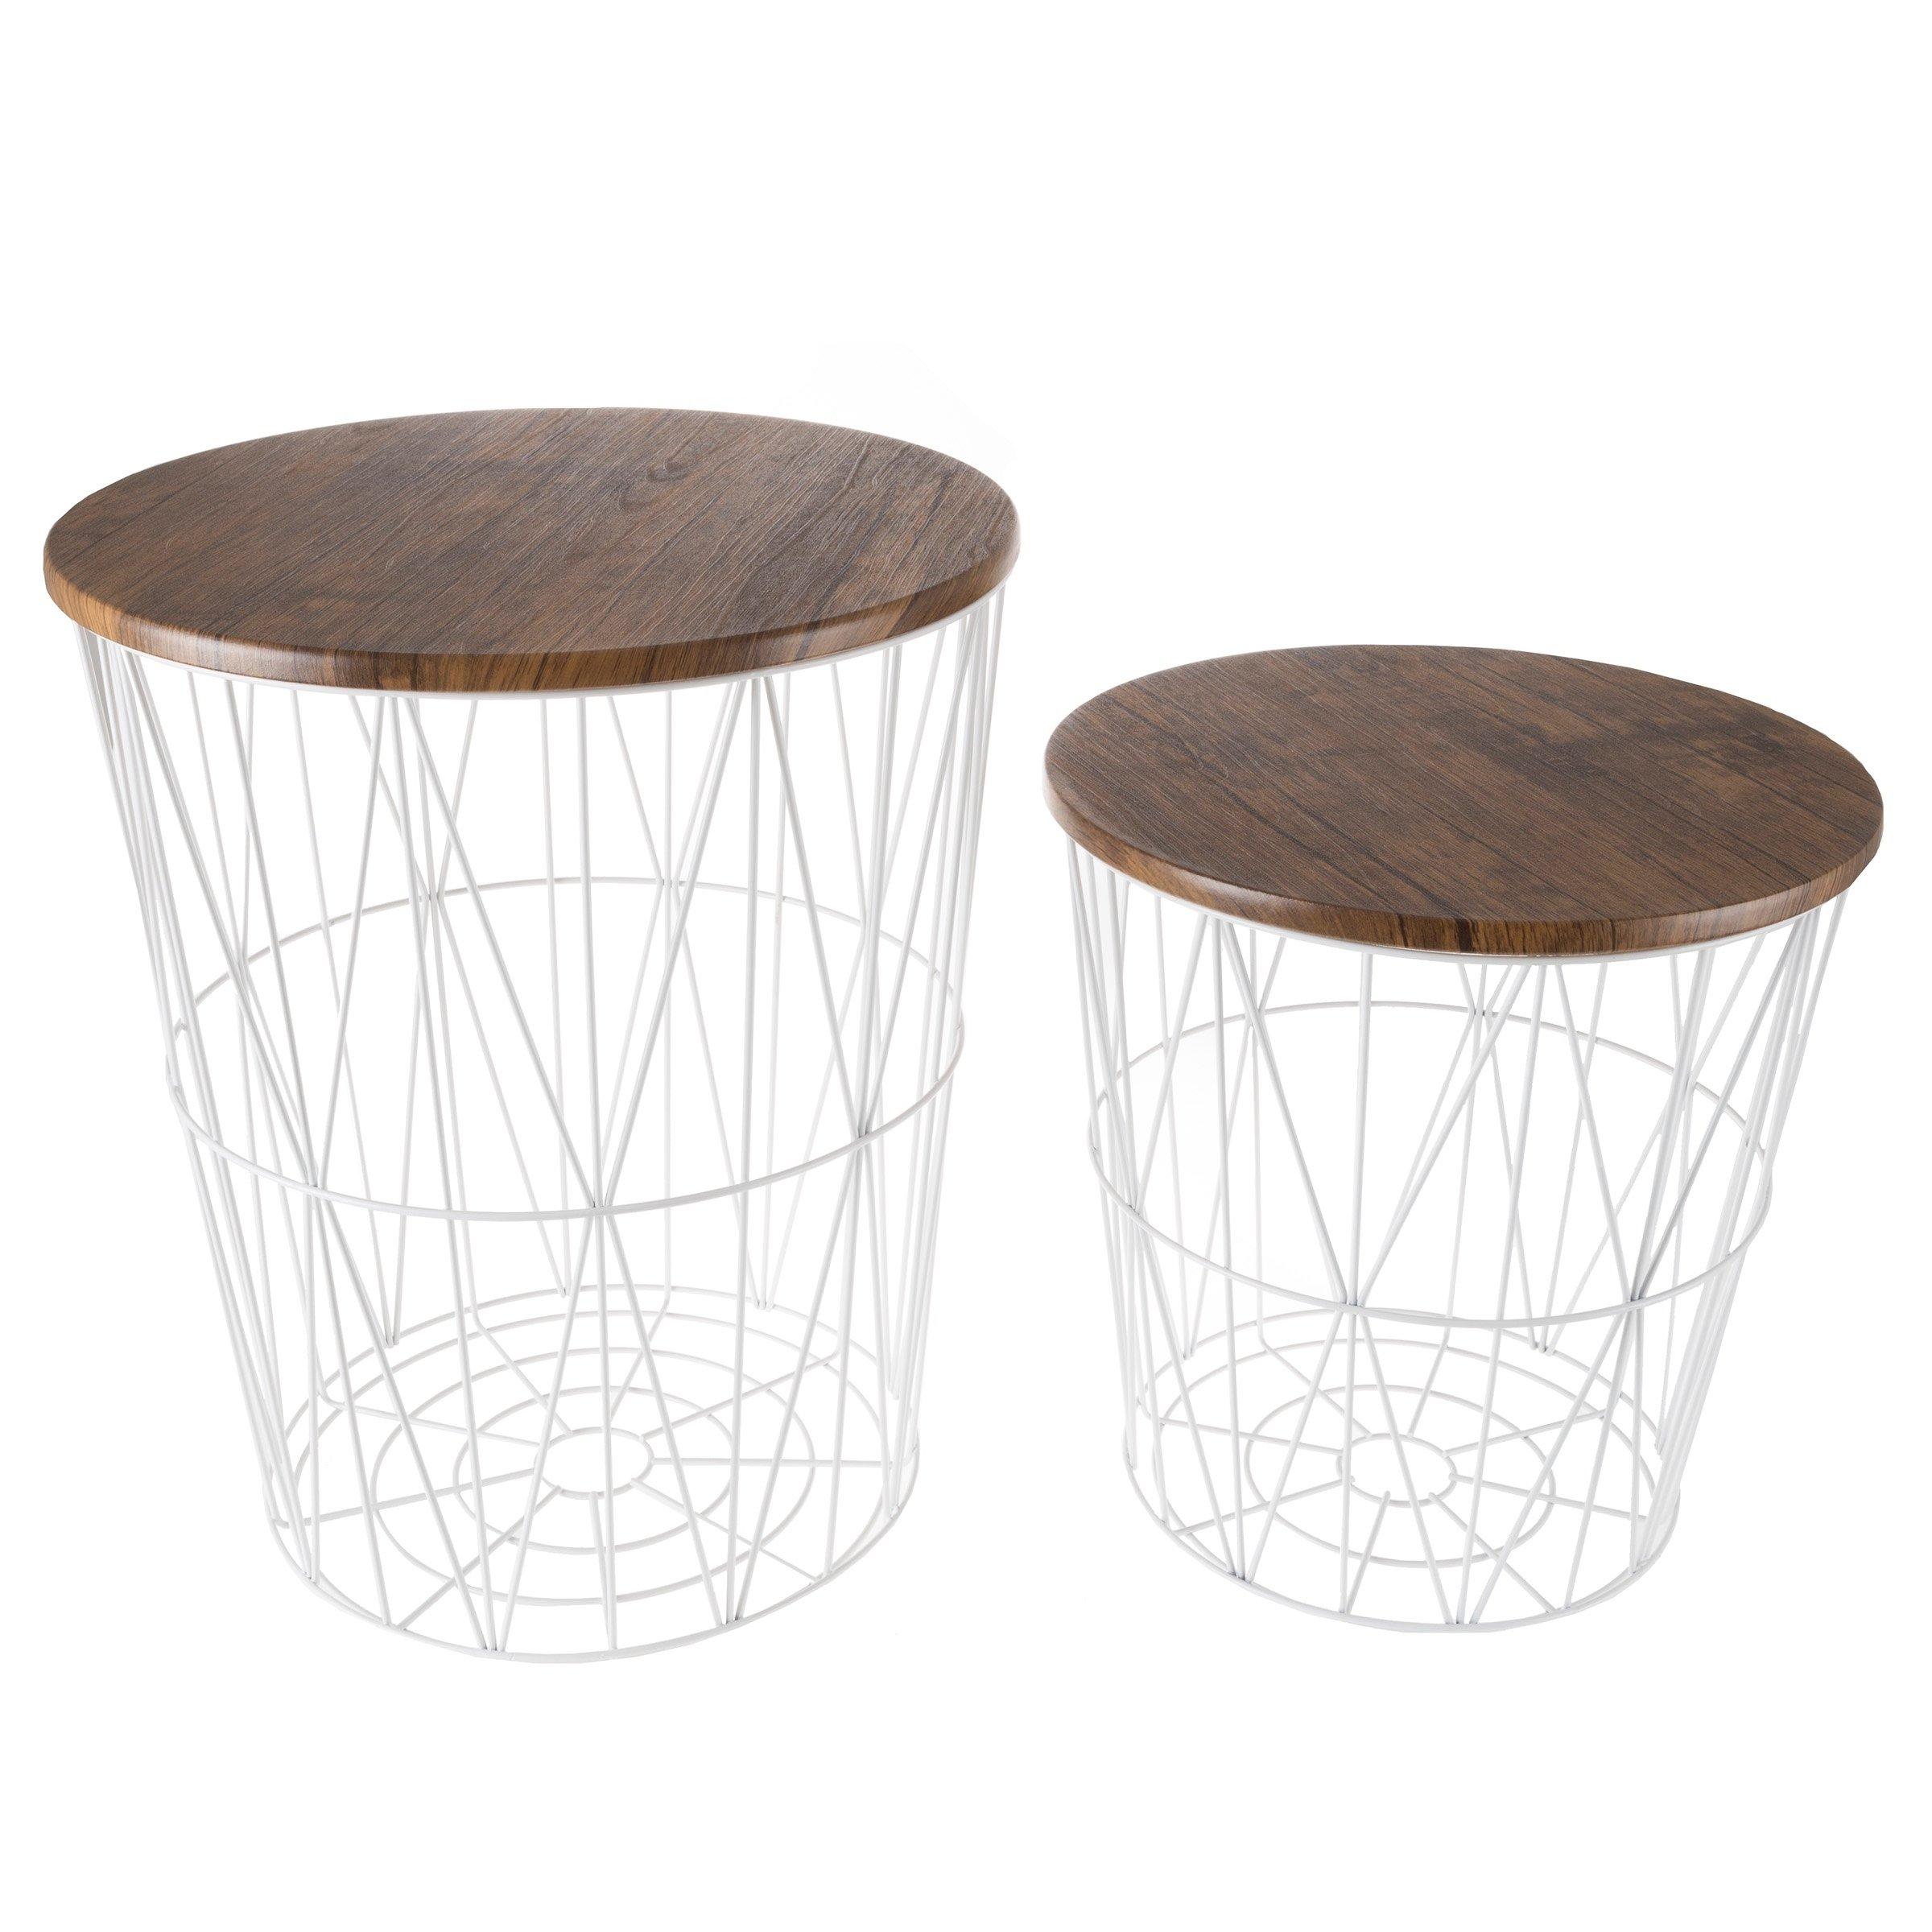 nesting end tables with storage set convertible round metal basket veneer wood top accent side lavish home room essentials table mini patio umbrella lamps kitchen counter pine